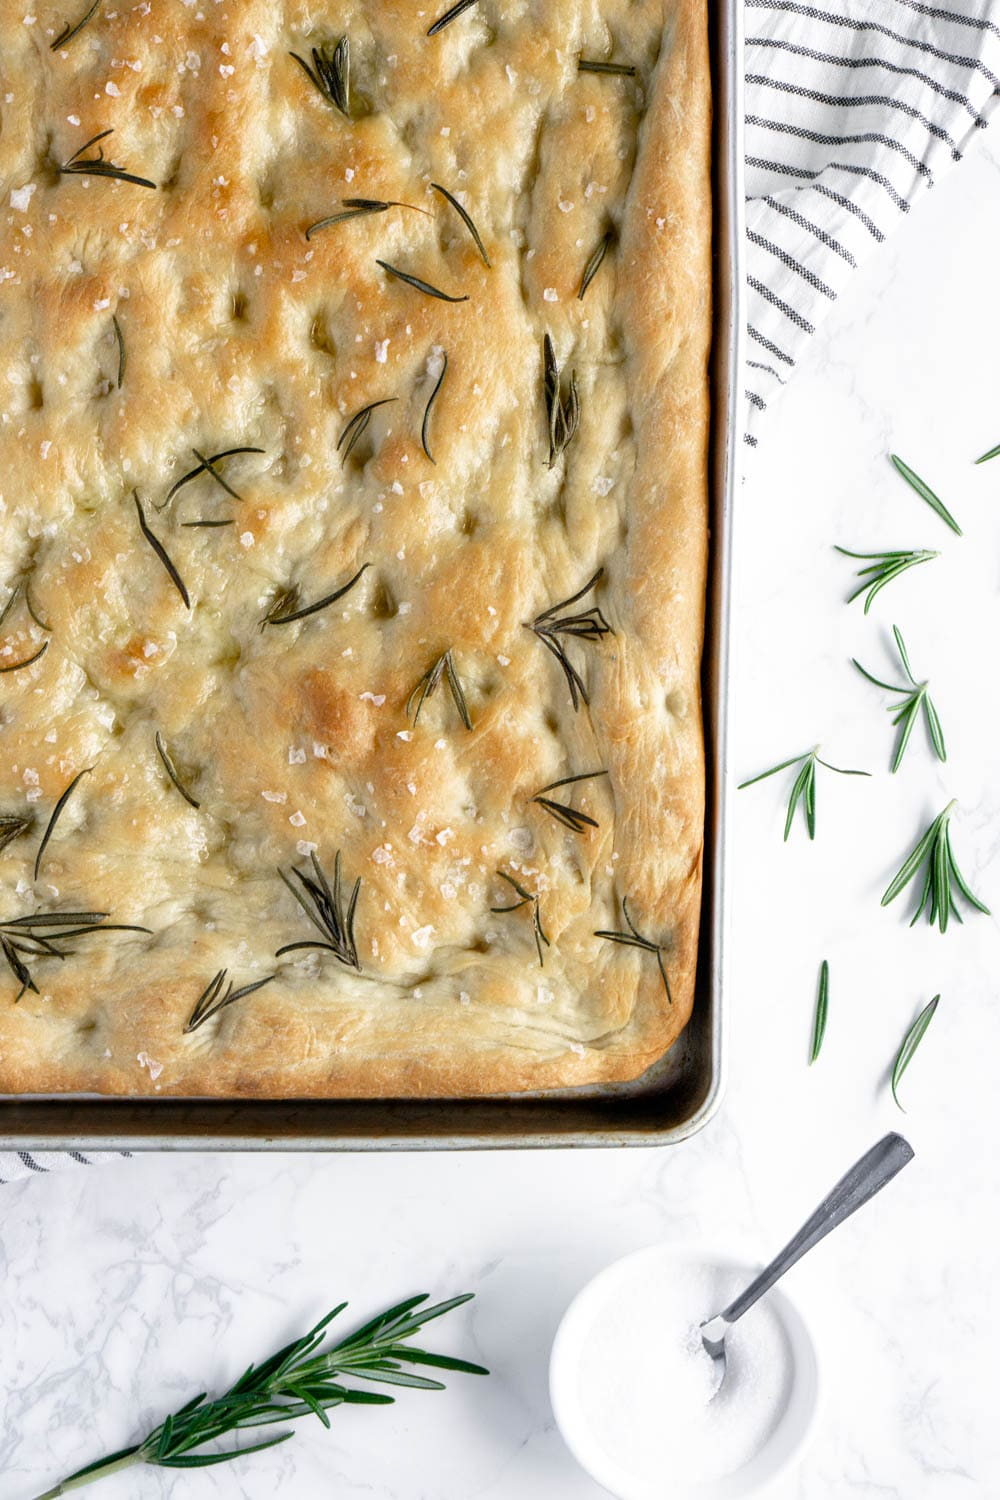 focaccia topped with rosemary in a sheet pan